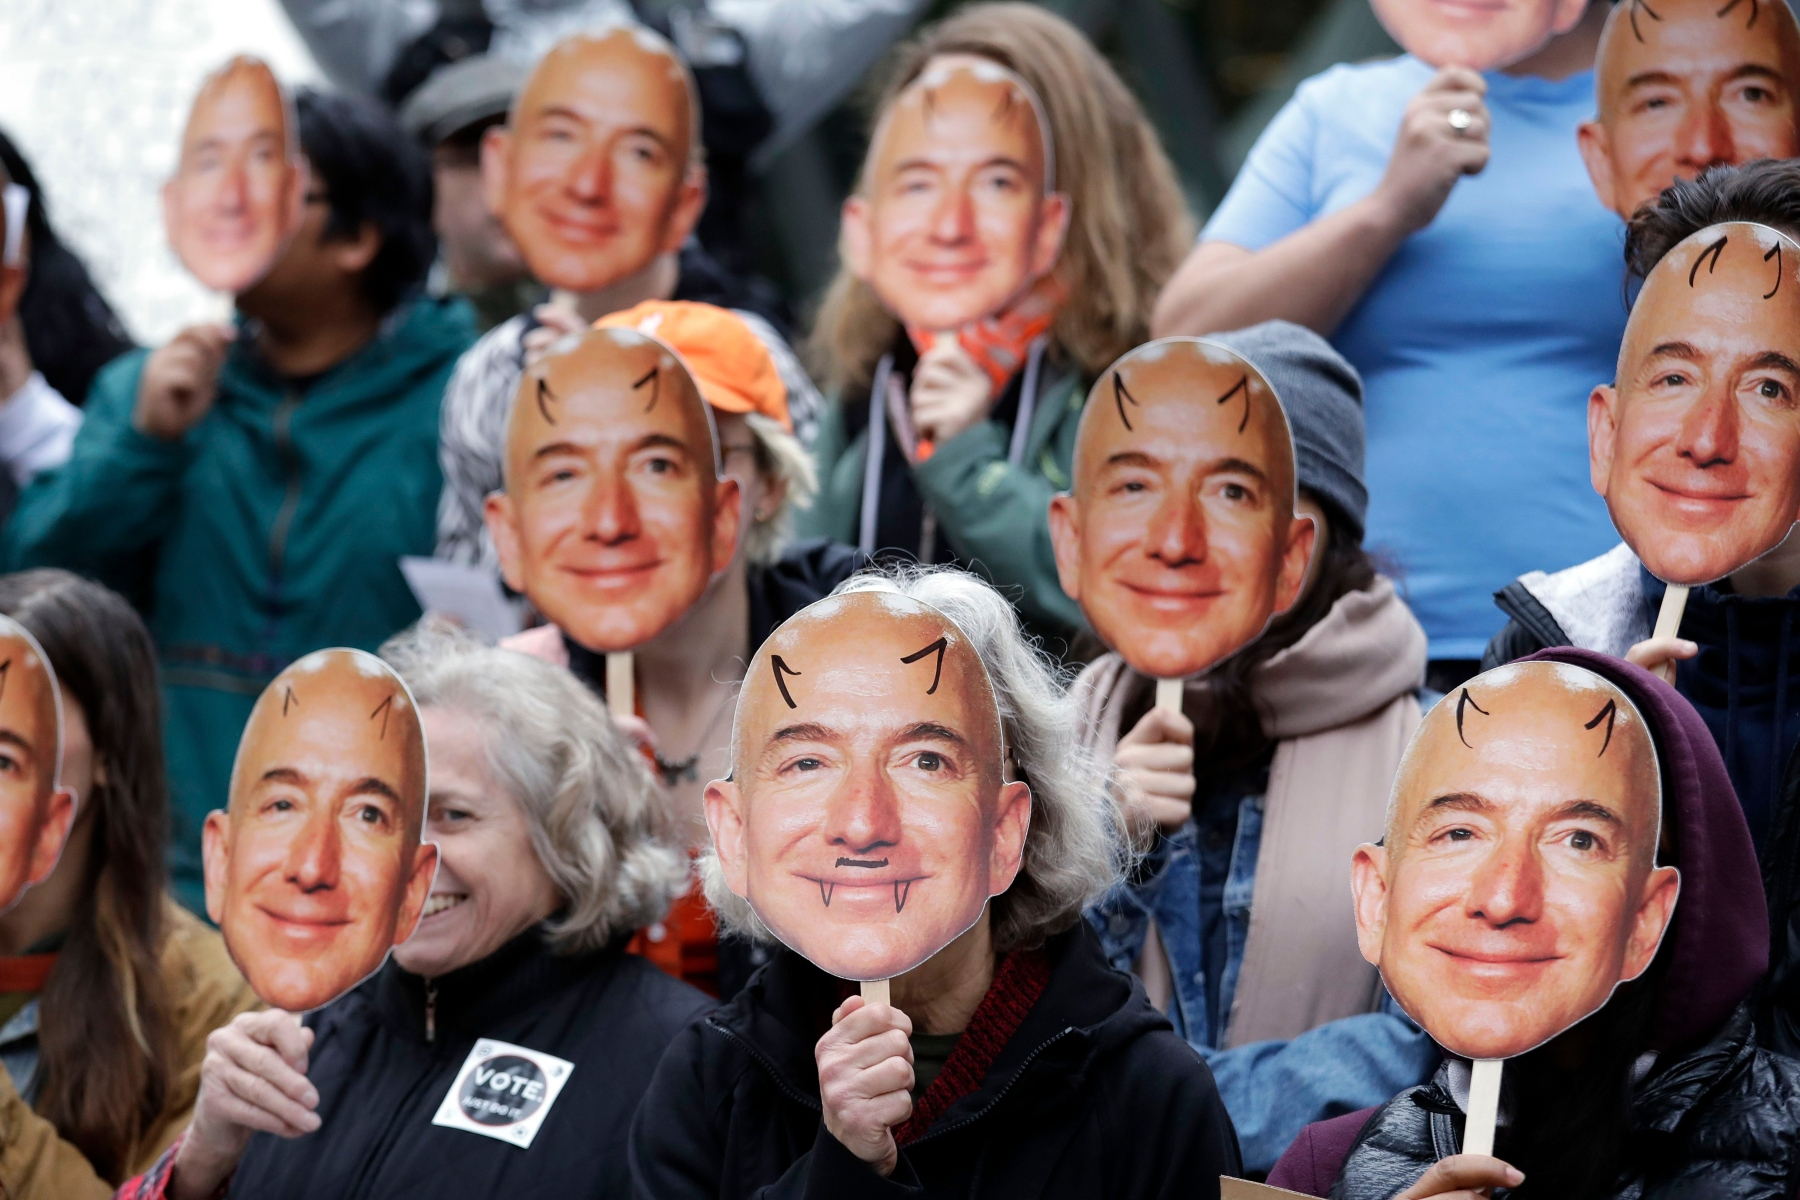 """Demonstrators hold images of Amazon CEO Jeff Bezos near their faces during a Halloween-themed protest at Amazon headquarters over the company's facial recognition system, """"Rekognition,"""", in Seattle. Protesters said that they were there in support of hundreds of Amazon employees who have signed a letter asking the company to stop marketing their facial recognition software to ICE and to drop its contract with software company Palantir and to law enforcement agenciesAmazon Protest, Seattle, USA - 31 Oct 2018"""